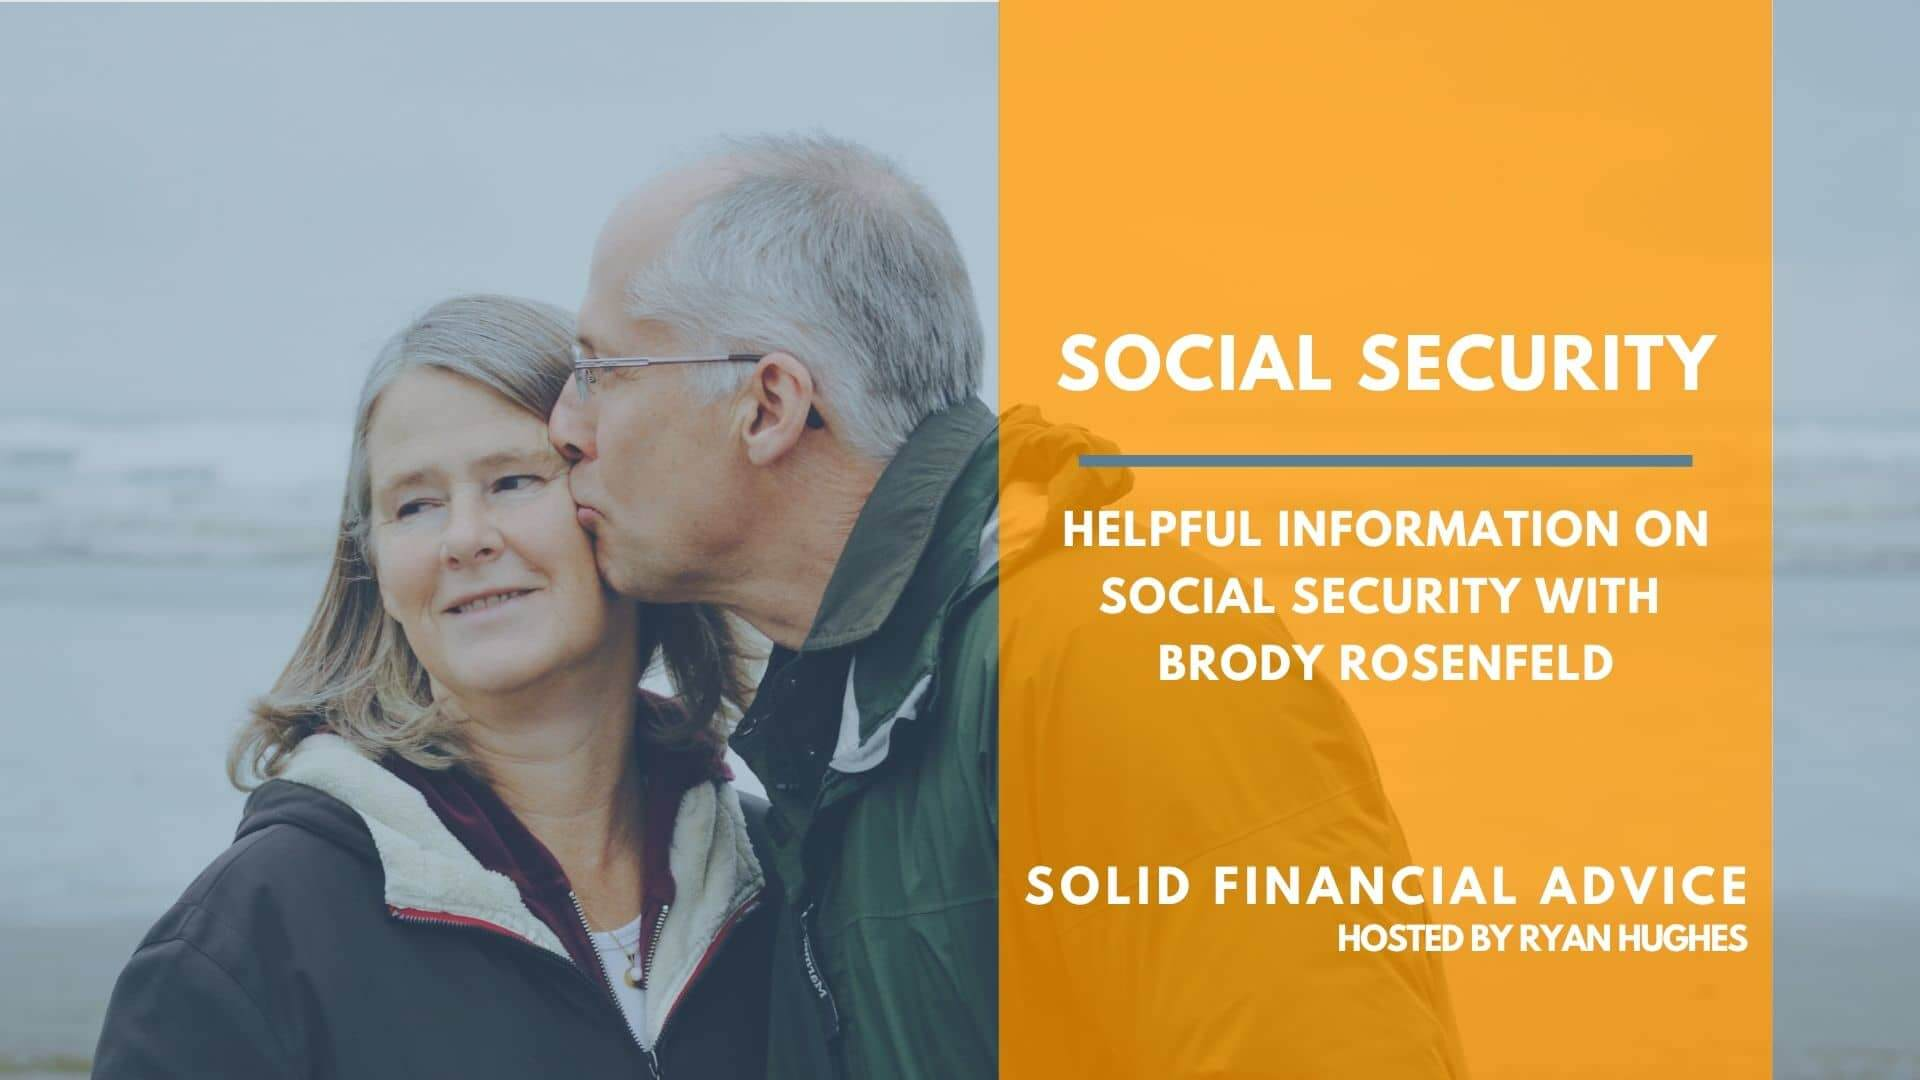 Helpful Information On Social Security With Brody Rosenfeld